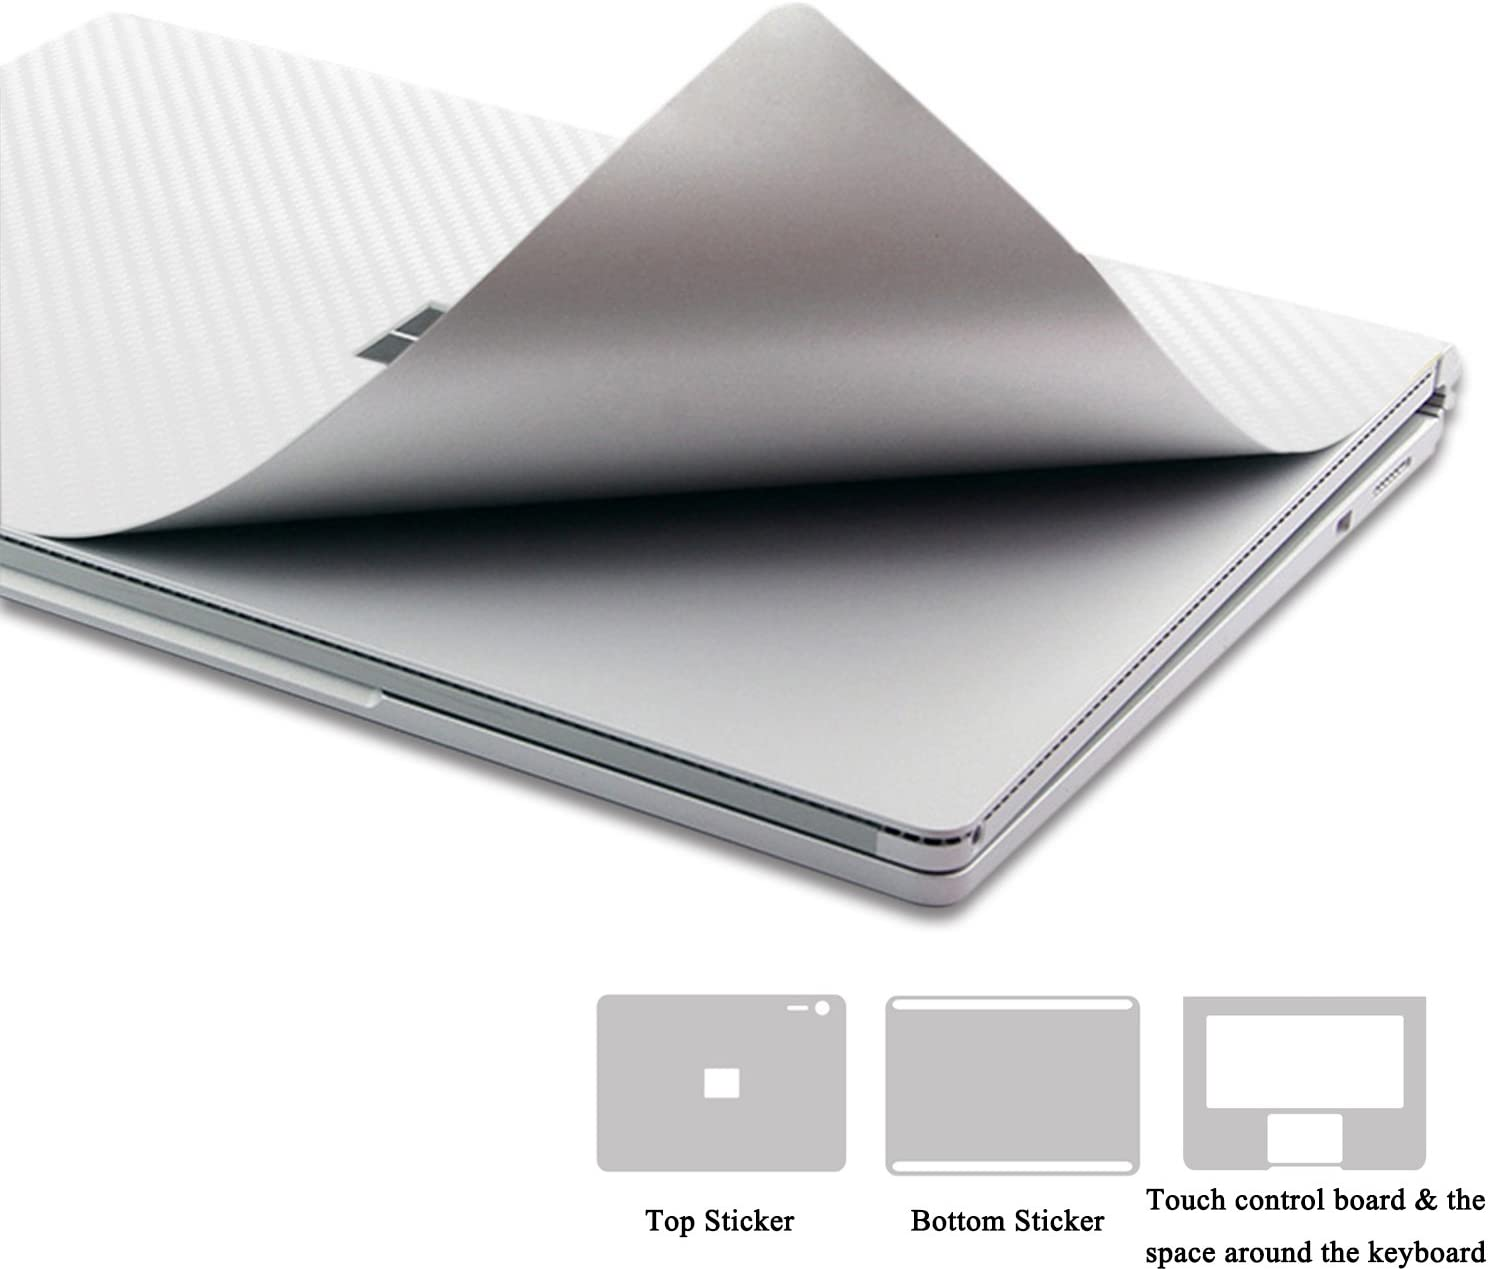 2017 Released MasiBloom Full Body Protector Decal Skin Laptop Cover Sticker for 13 13.5 inch Microsoft Surface Book 2 Core i5 Standard Configuration Version for 13.5 Book 2, Silver